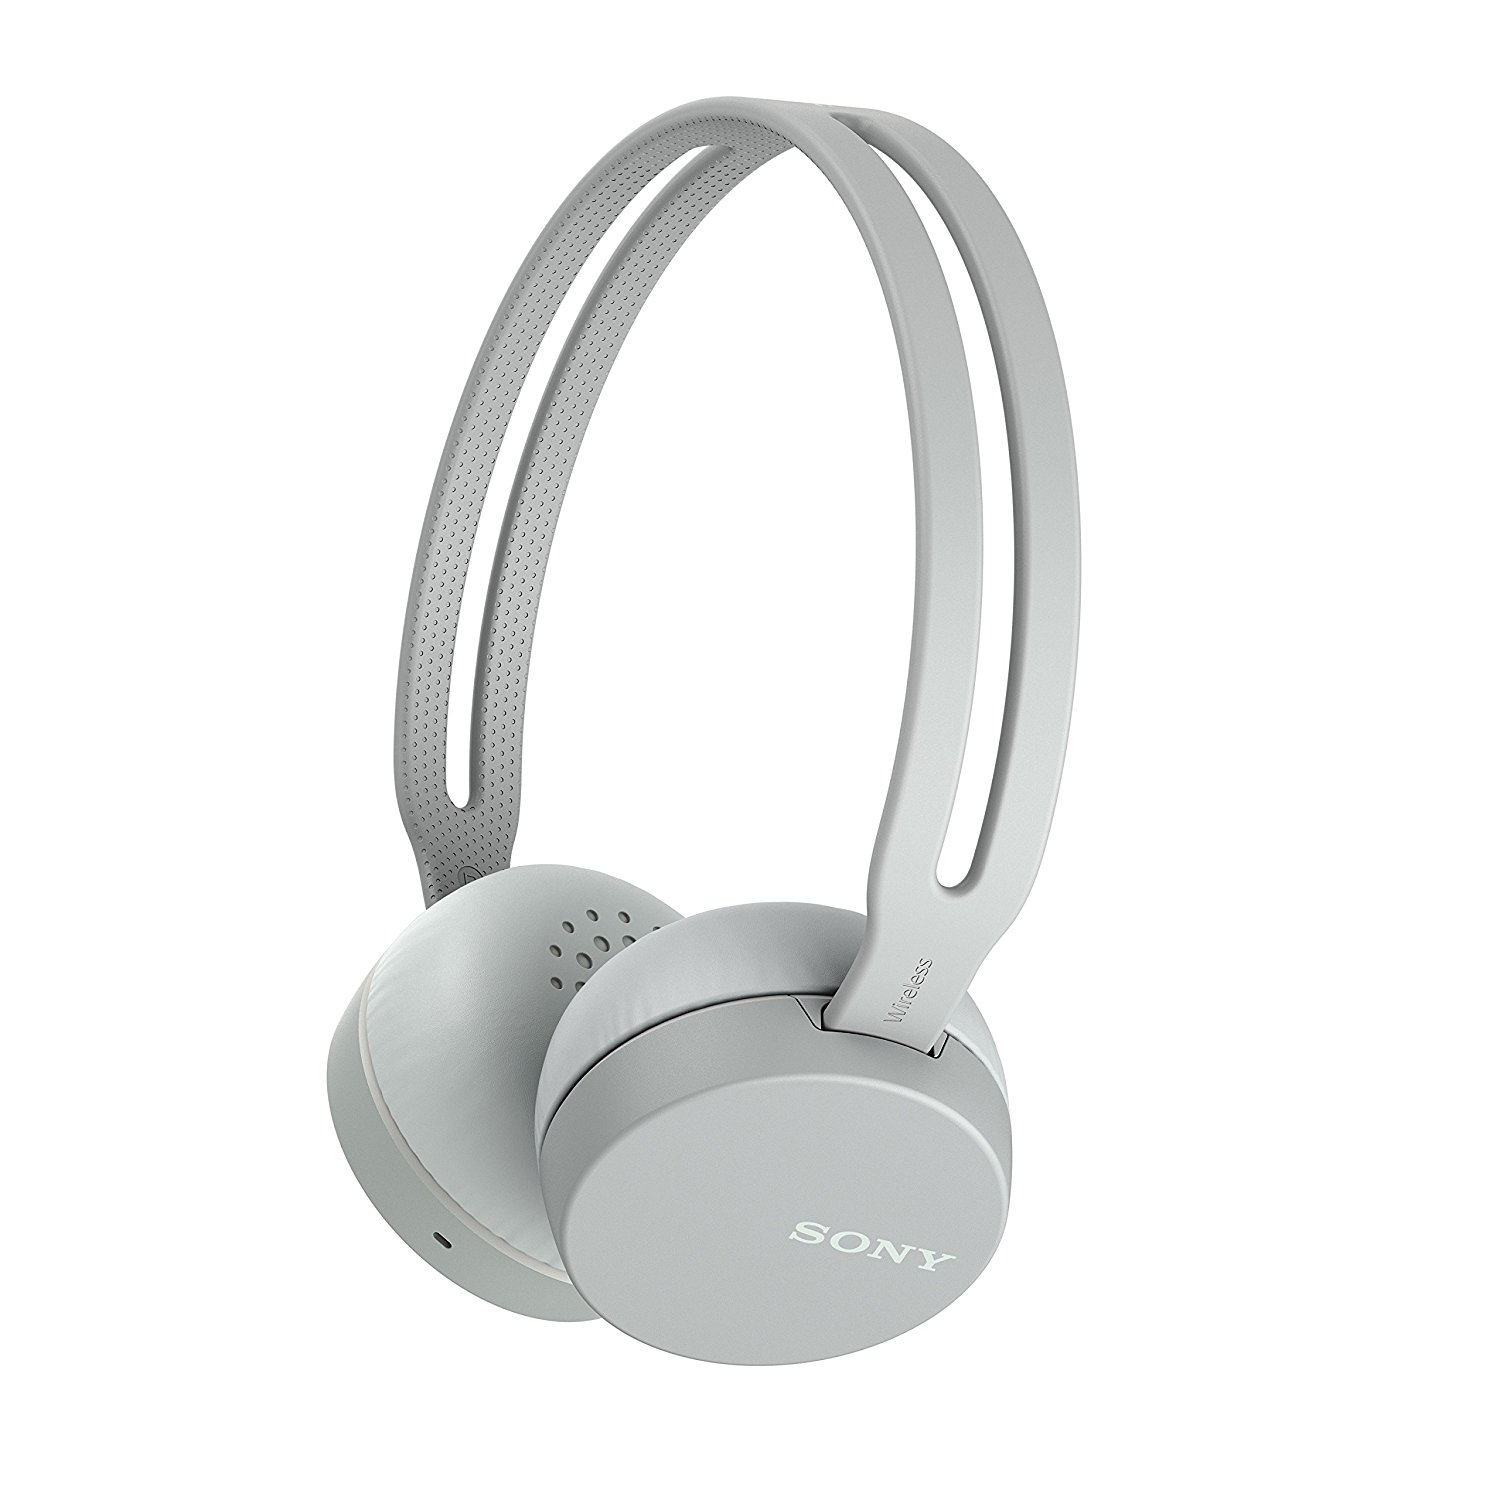 Sony, bluetooth, tintucaudio